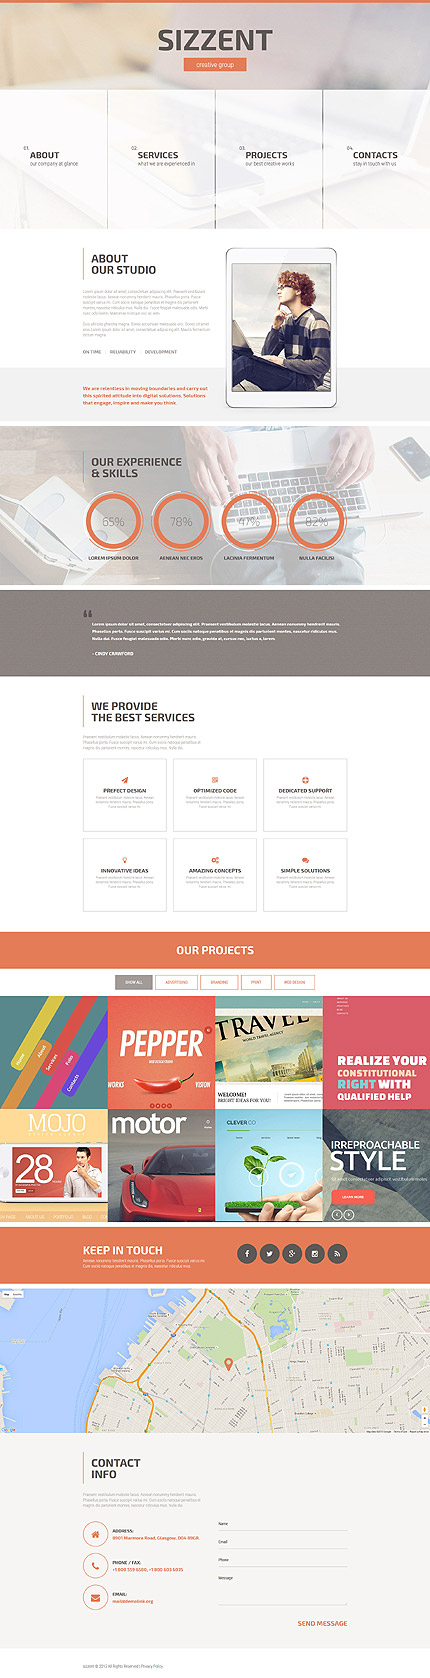 Web Design Most Popular website inspirations at your coffee break? Browse for more Responsive JavaScript Animated #templates! // Regular price: $69 // Sources available: .HTML,  .PSD #Web Design #Most Popular #Responsive JavaScript Animated